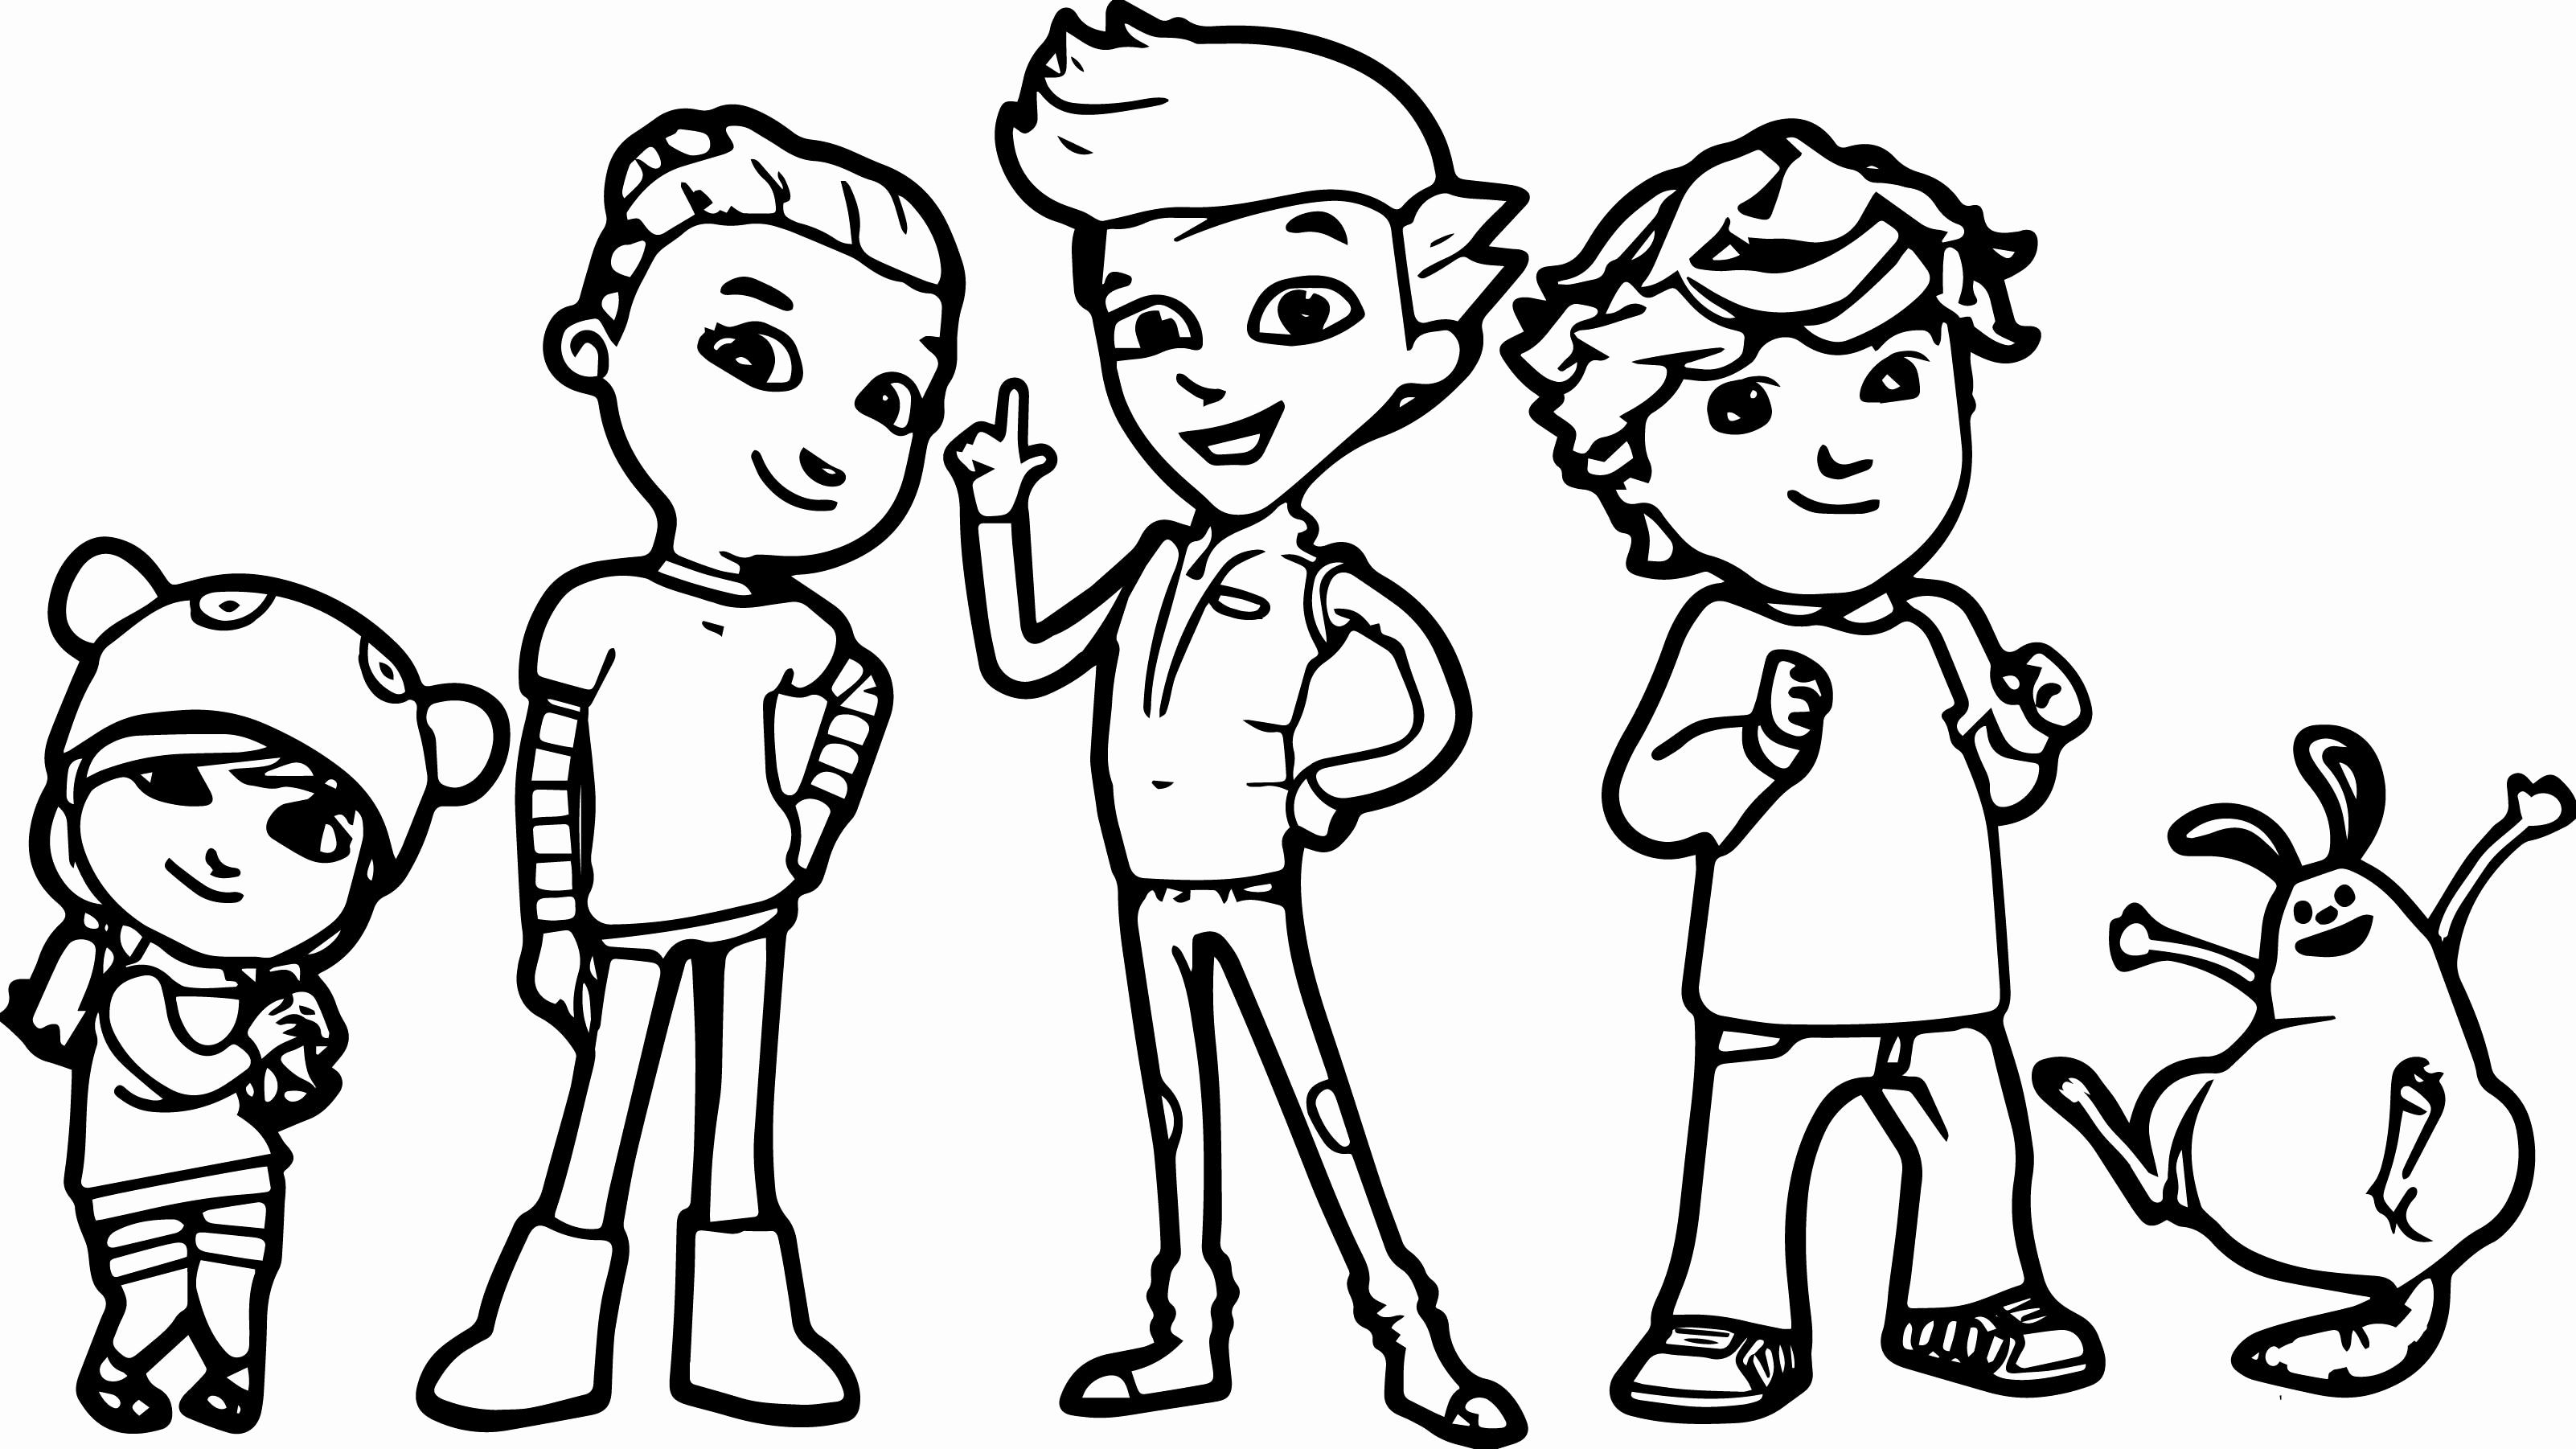 3204x1802 Pbs Kids Coloring Pages With Ready Jet Go Page